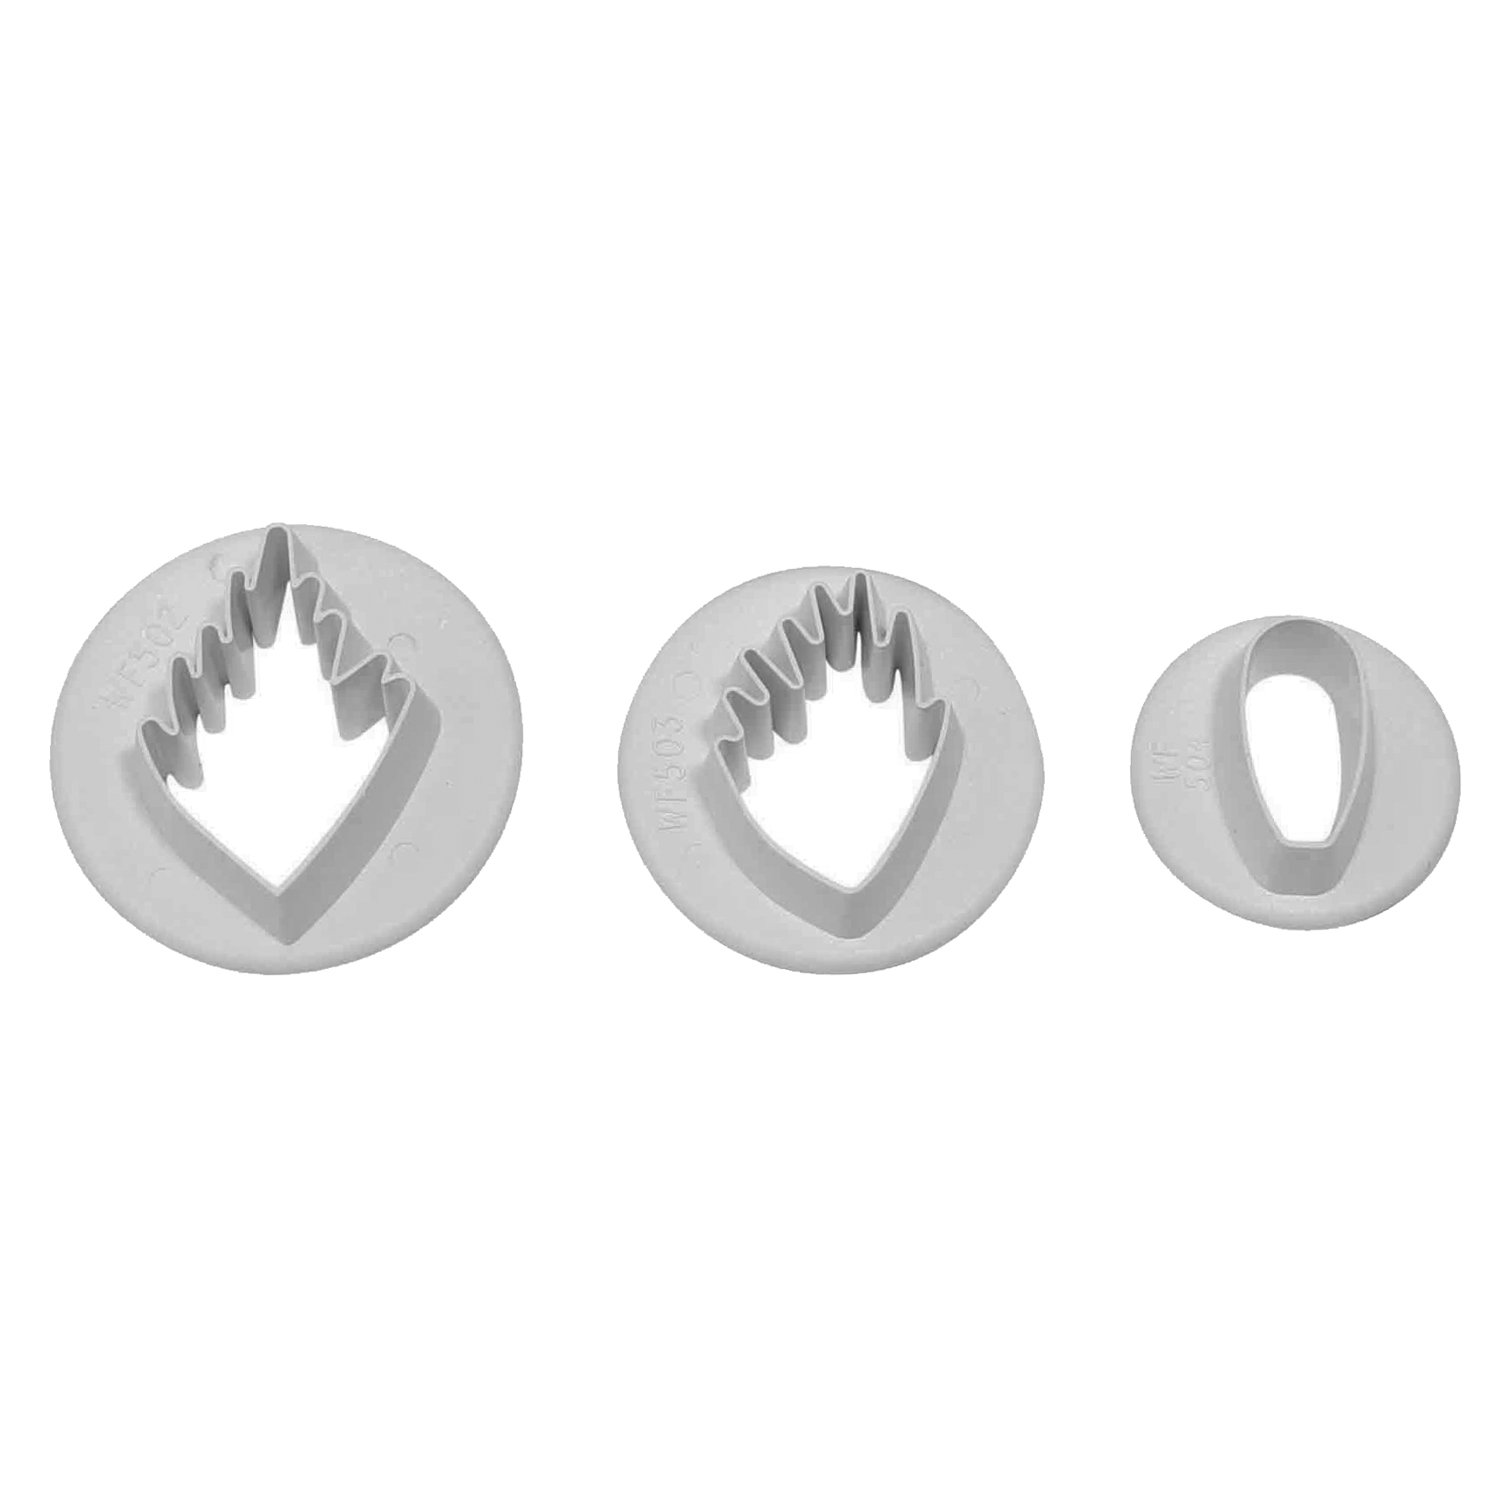 PME Wood Anemone Set of 3 cutters by PME SUGARCRAFT (Image #1)